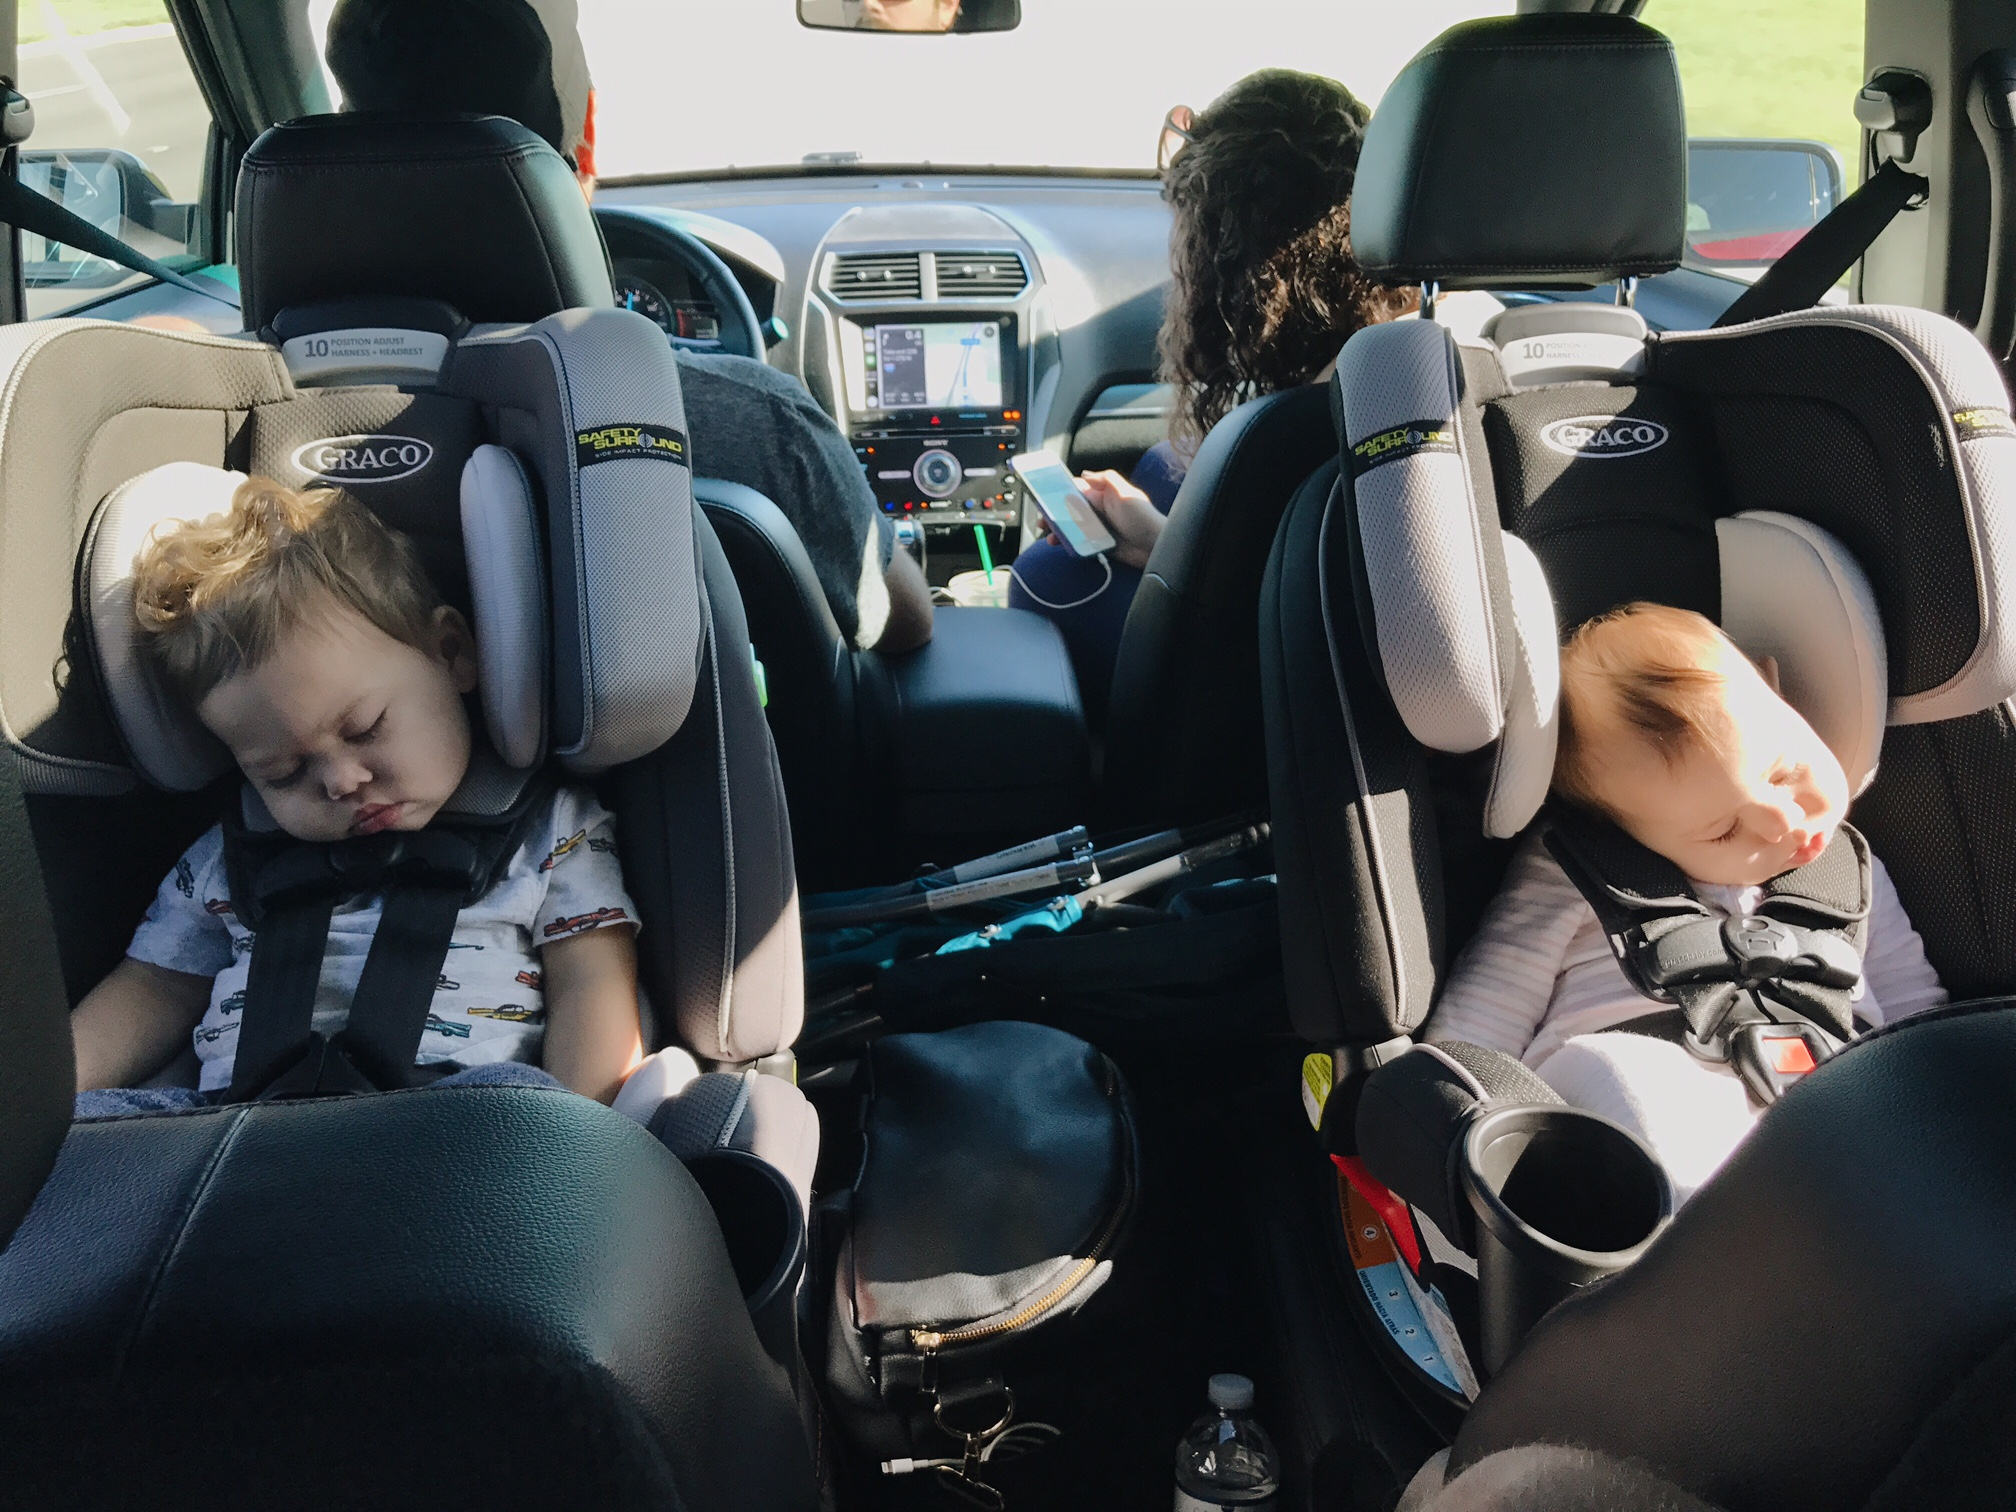 We didn't even make it to the airport and the babes were passed out!